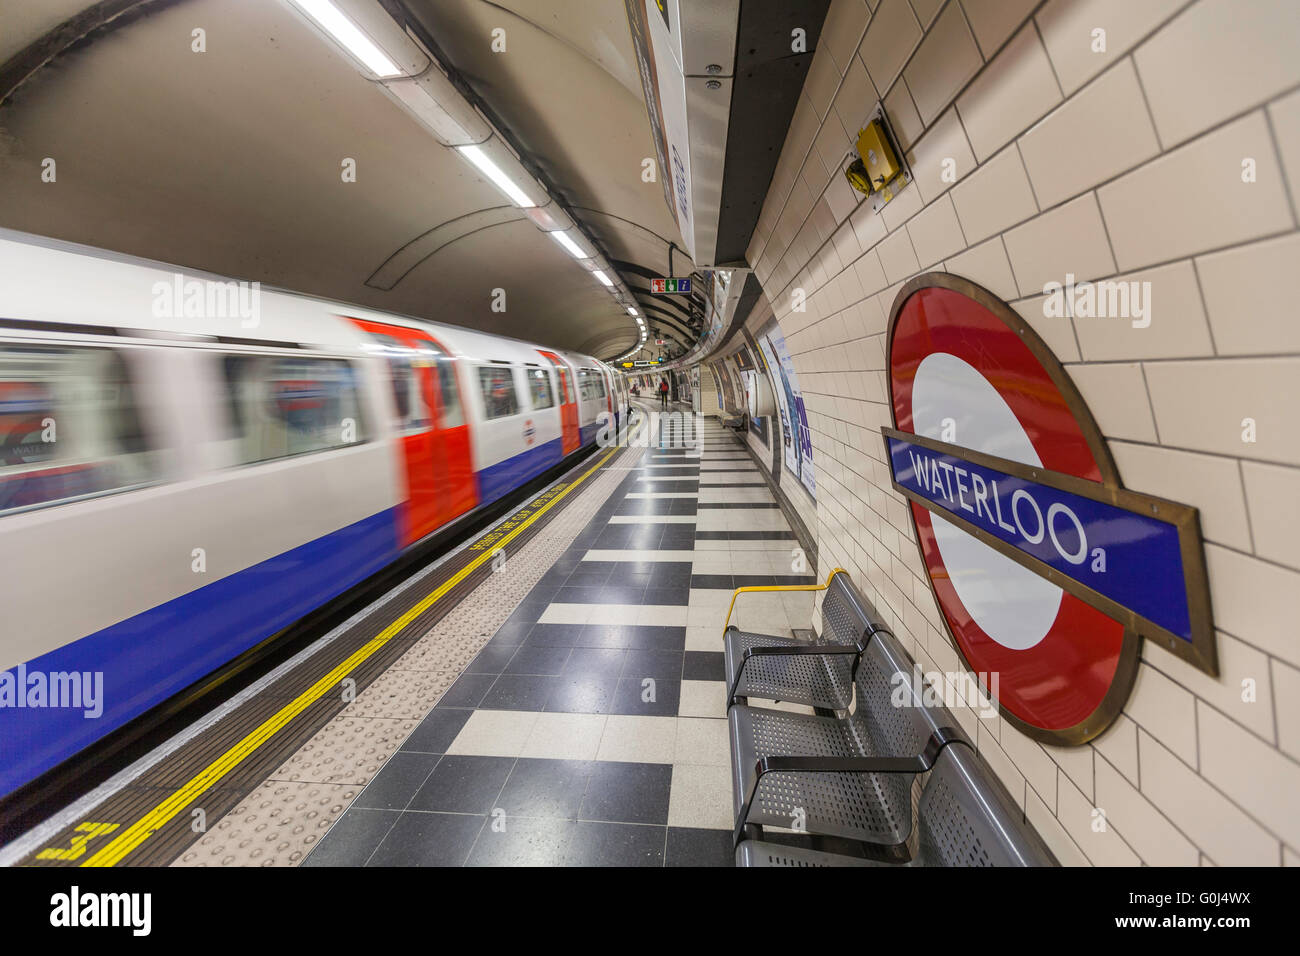 Waterloo Underground station in London, UK, as a train is arriving - Stock Image